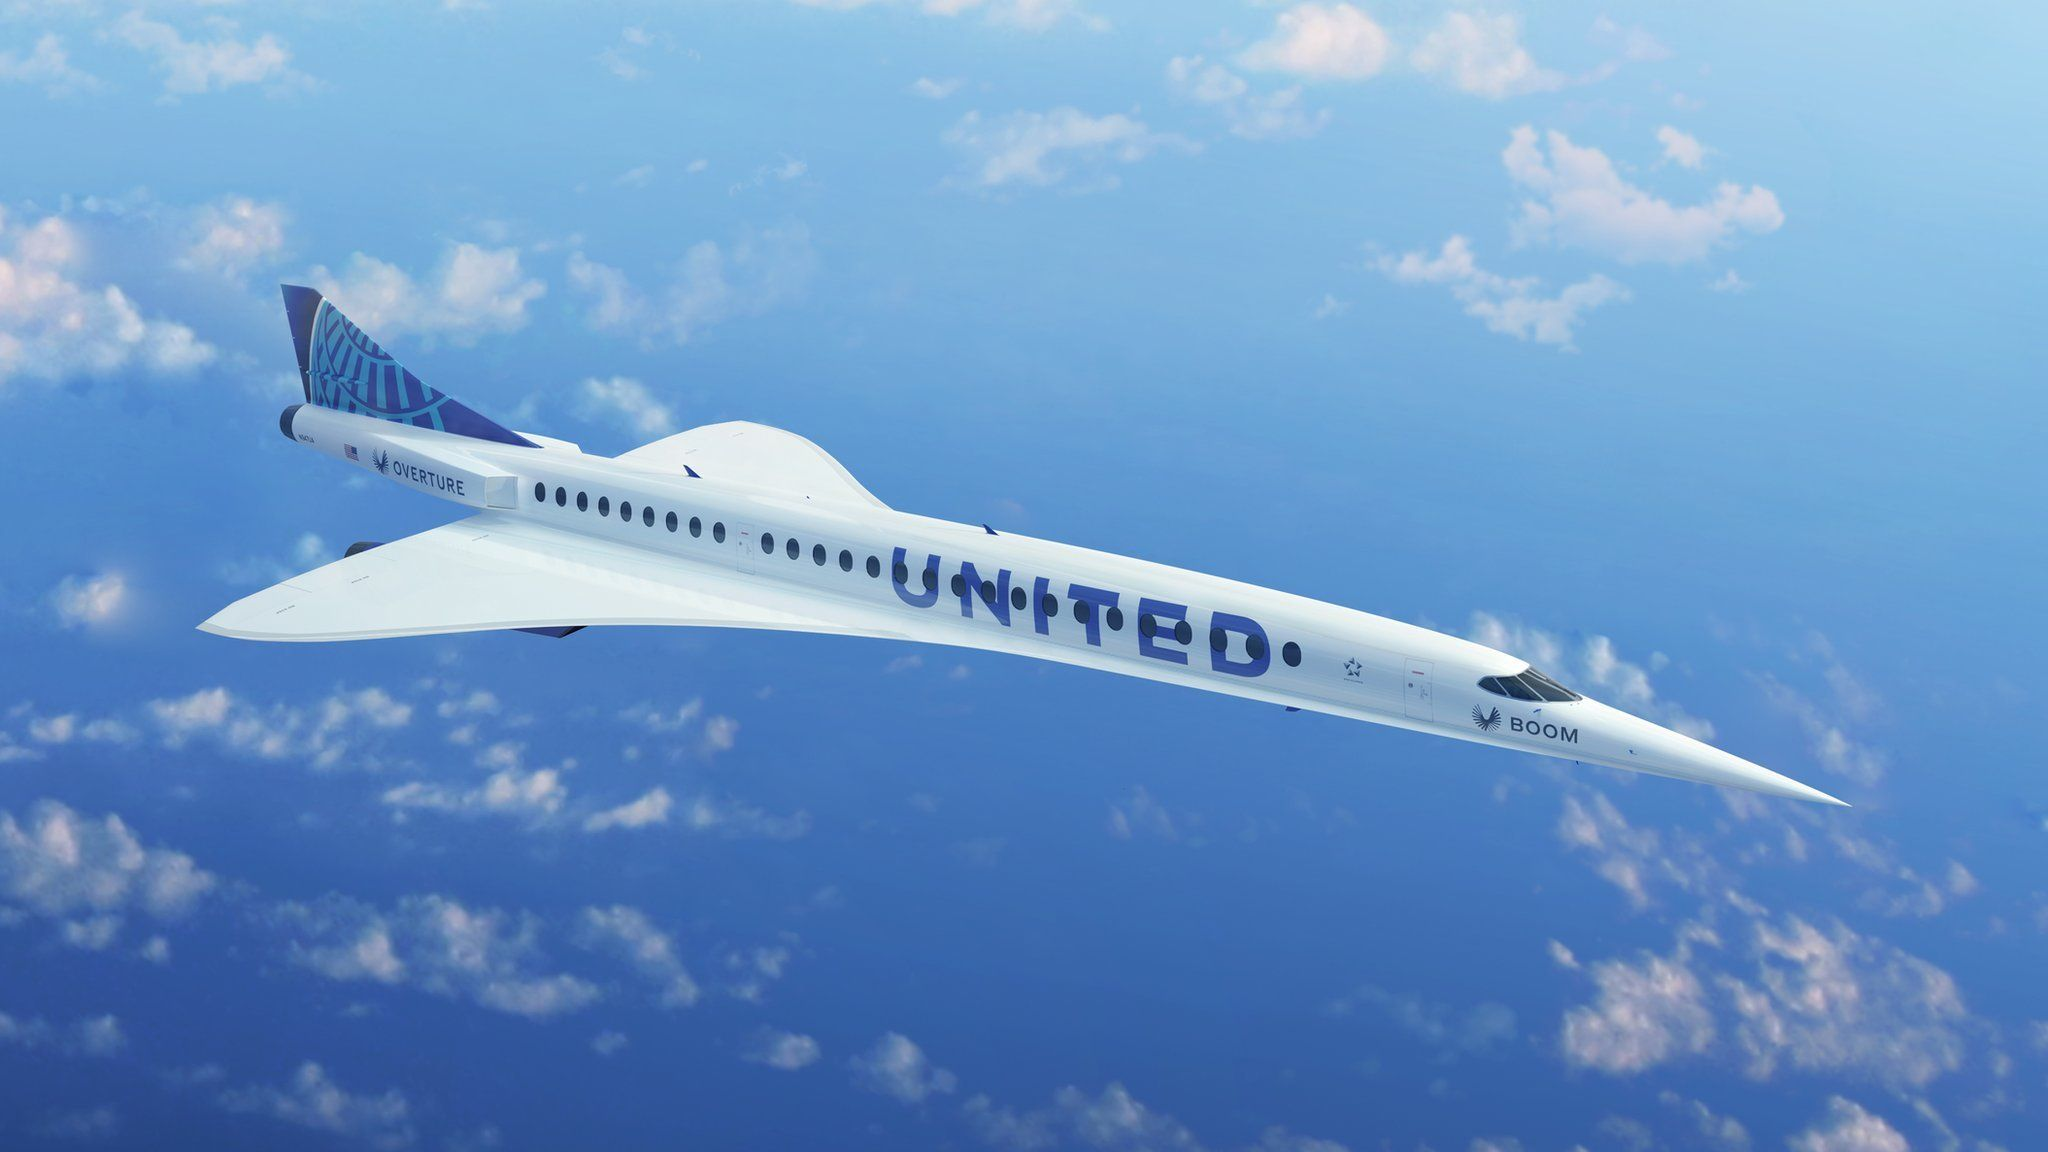 An Overture supersonic plane in United livery